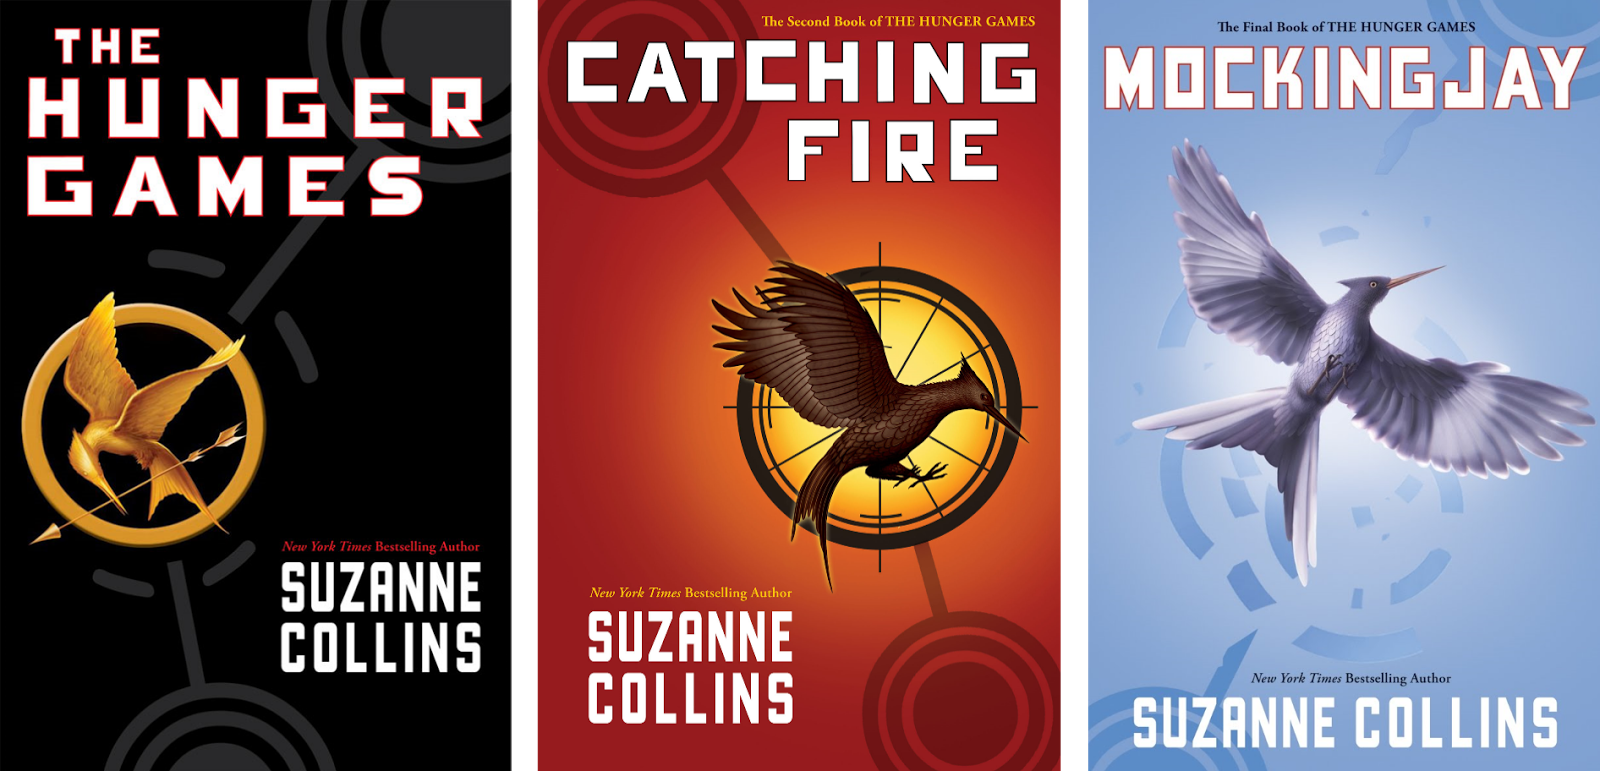 http://www.amazon.com/Hunger-Games-Complete-Trilogy-ebook/dp/B004XJRQUQ/ref=sr_1_2?s=books&ie=UTF8&qid=1419274963&sr=1-2&keywords=Hunger+Games